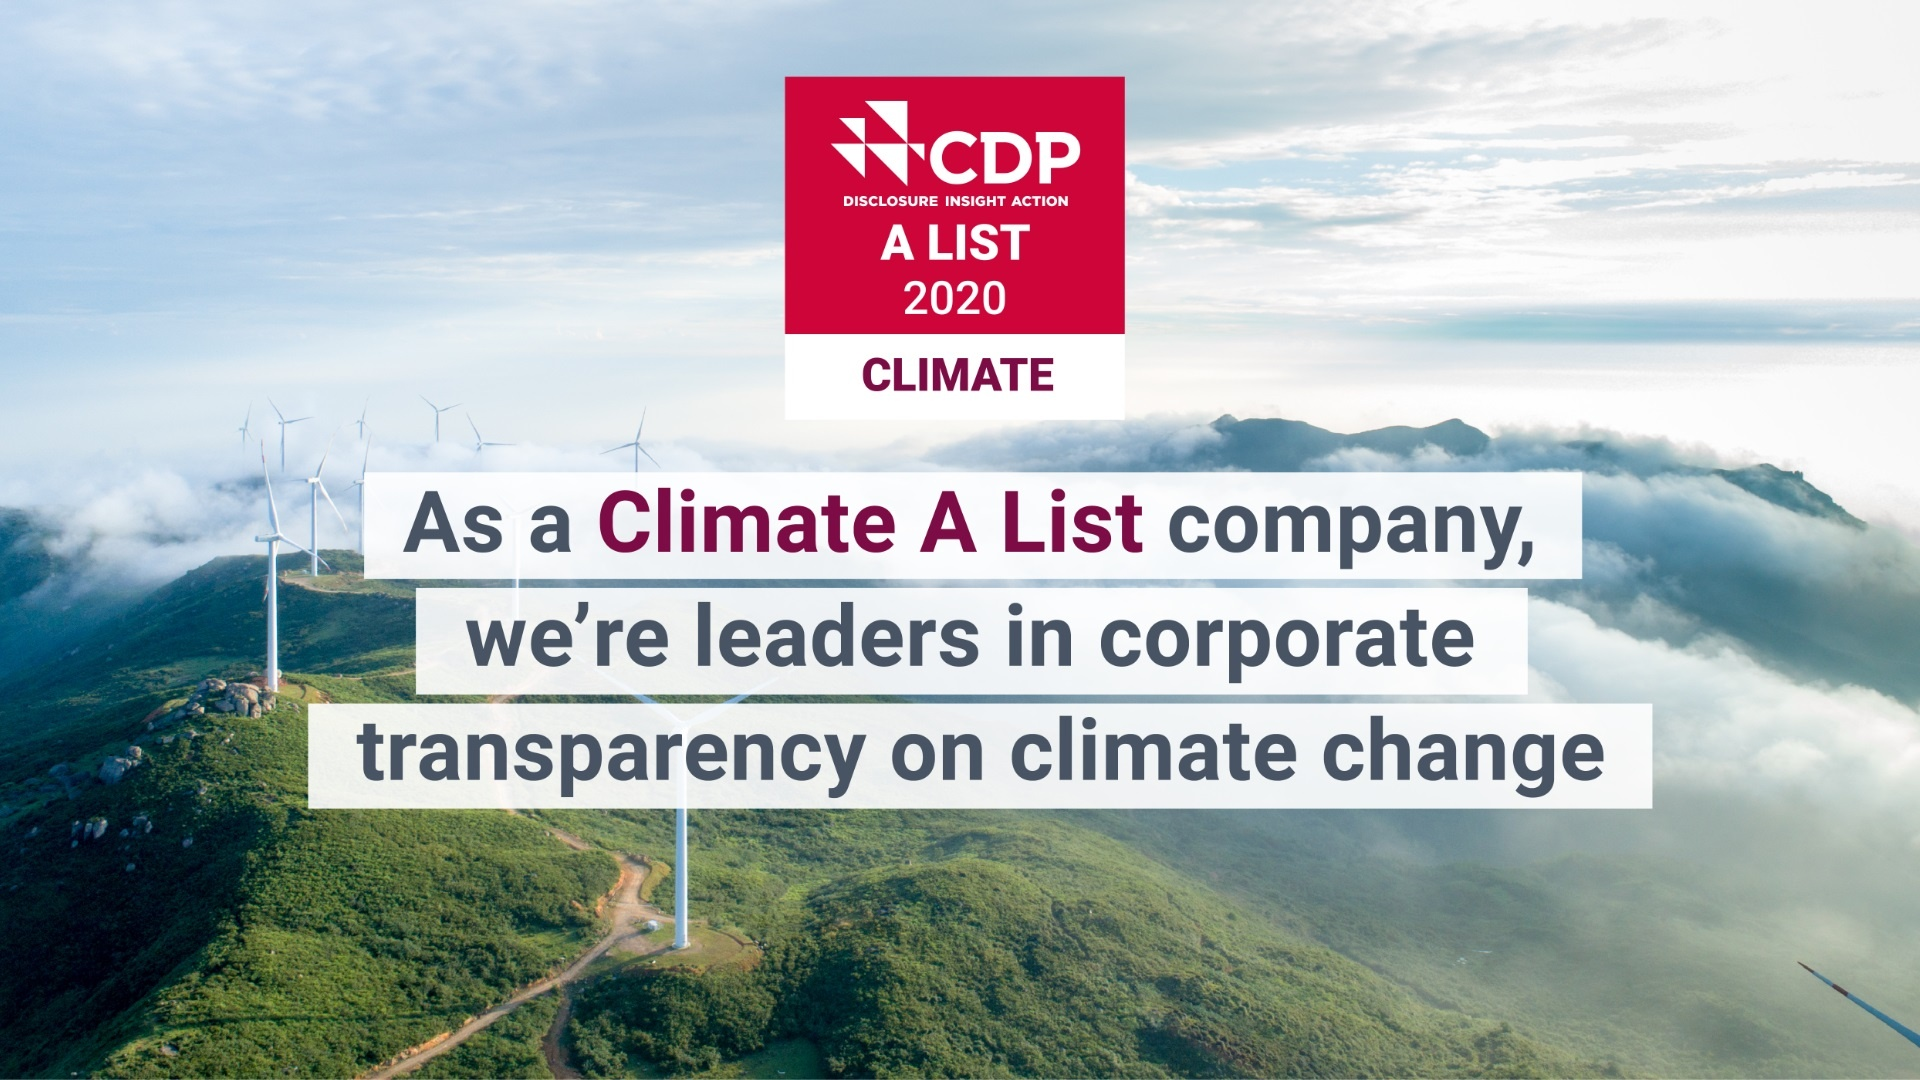 Ford Again Receives Global Corporate Sustainability Honors For Leadership In Climate Change